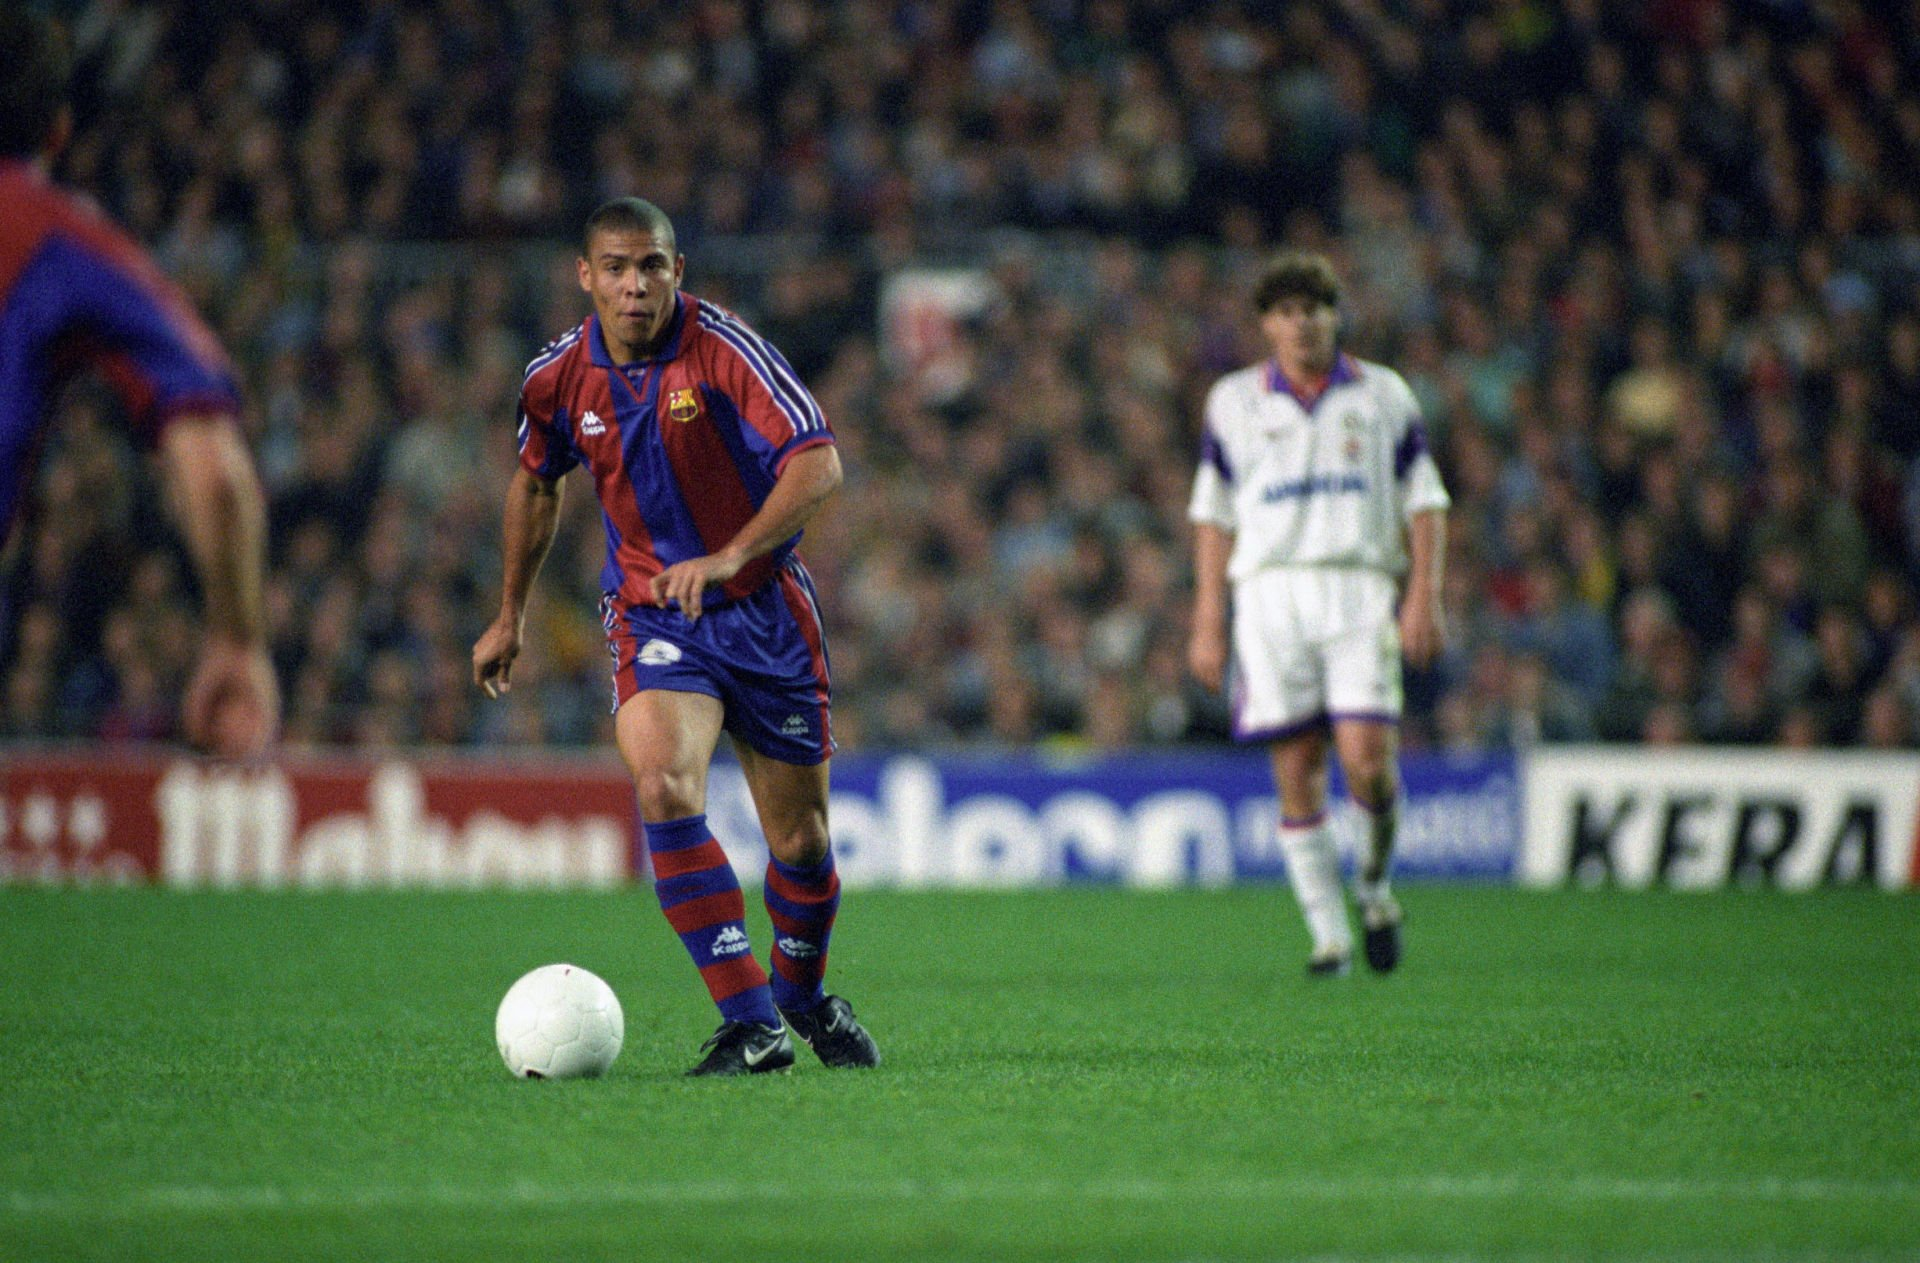 ARCHIV MATERIAL - COUPE DES COUPES 1997, ronaldo. EXPA Pictures © 2019, PhotoCredit: EXPA/ Pressesports/ Alain Landrain *****ATTENTION - for AUT, SLO, CRO, SRB, BIH, MAZ, POL only***** FOT. EXPA / NEWSPIX.PL AUSTRIA, Italy, Spain, Slovenia, Serbia, Croatia, Germany, UK, USA and Sweden OUT! --- Newspix.pl *** Local Caption *** www.newspix.pl mail us: info@newspix.pl call us: 0048 022 23 22 222 --- Polish Picture Agency by Ringier Axel Springer Poland